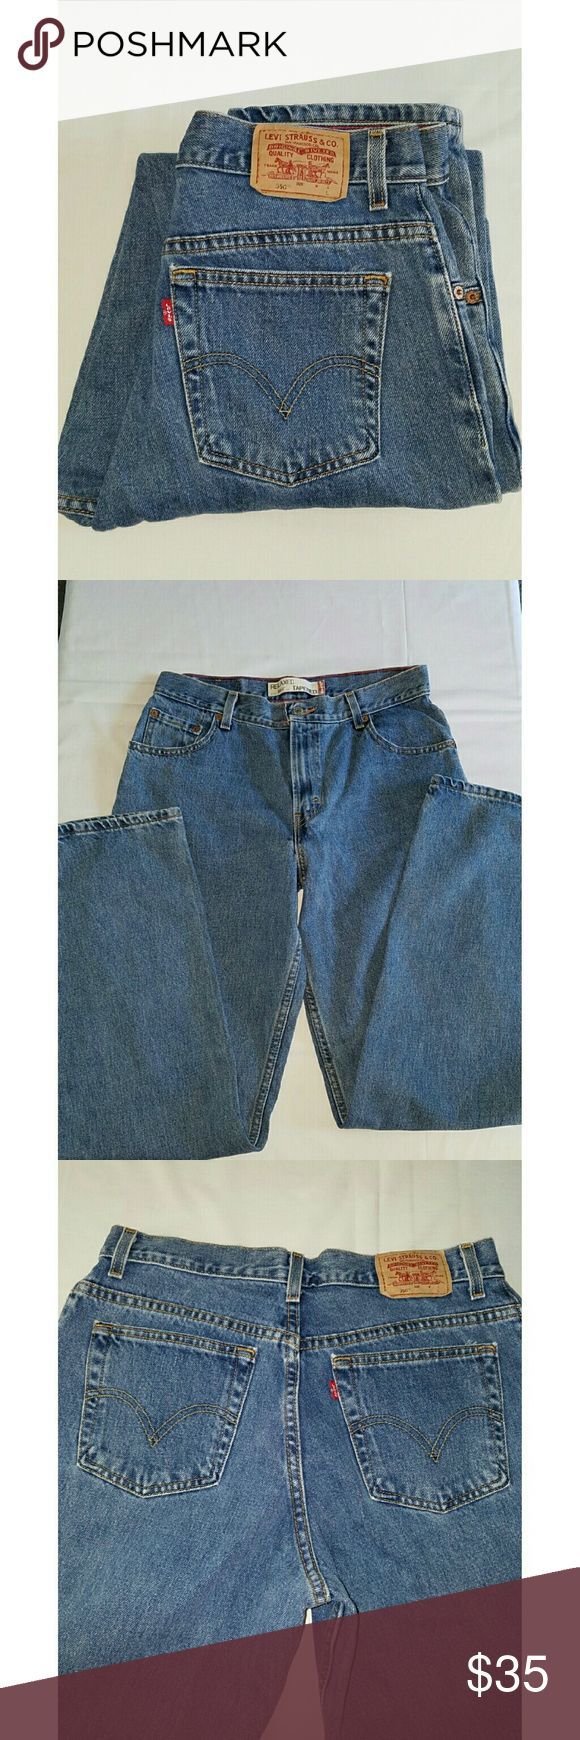 """🔊NEW🔊VTG LEVI'S 550 LIGHT WASH MOM JEANS VINTAGE LEVI'S 550 MOM LIGHT WASH JEANS Party like your """"mom"""" did, afterall it was good enough for her!! Waist is 15.5"""" rise is 12"""" and inseam is 33"""". All measurements are approximate and taken flat.  The size on label says 12 L and they are relaxed fit with tapered legs. Levi's Jeans"""